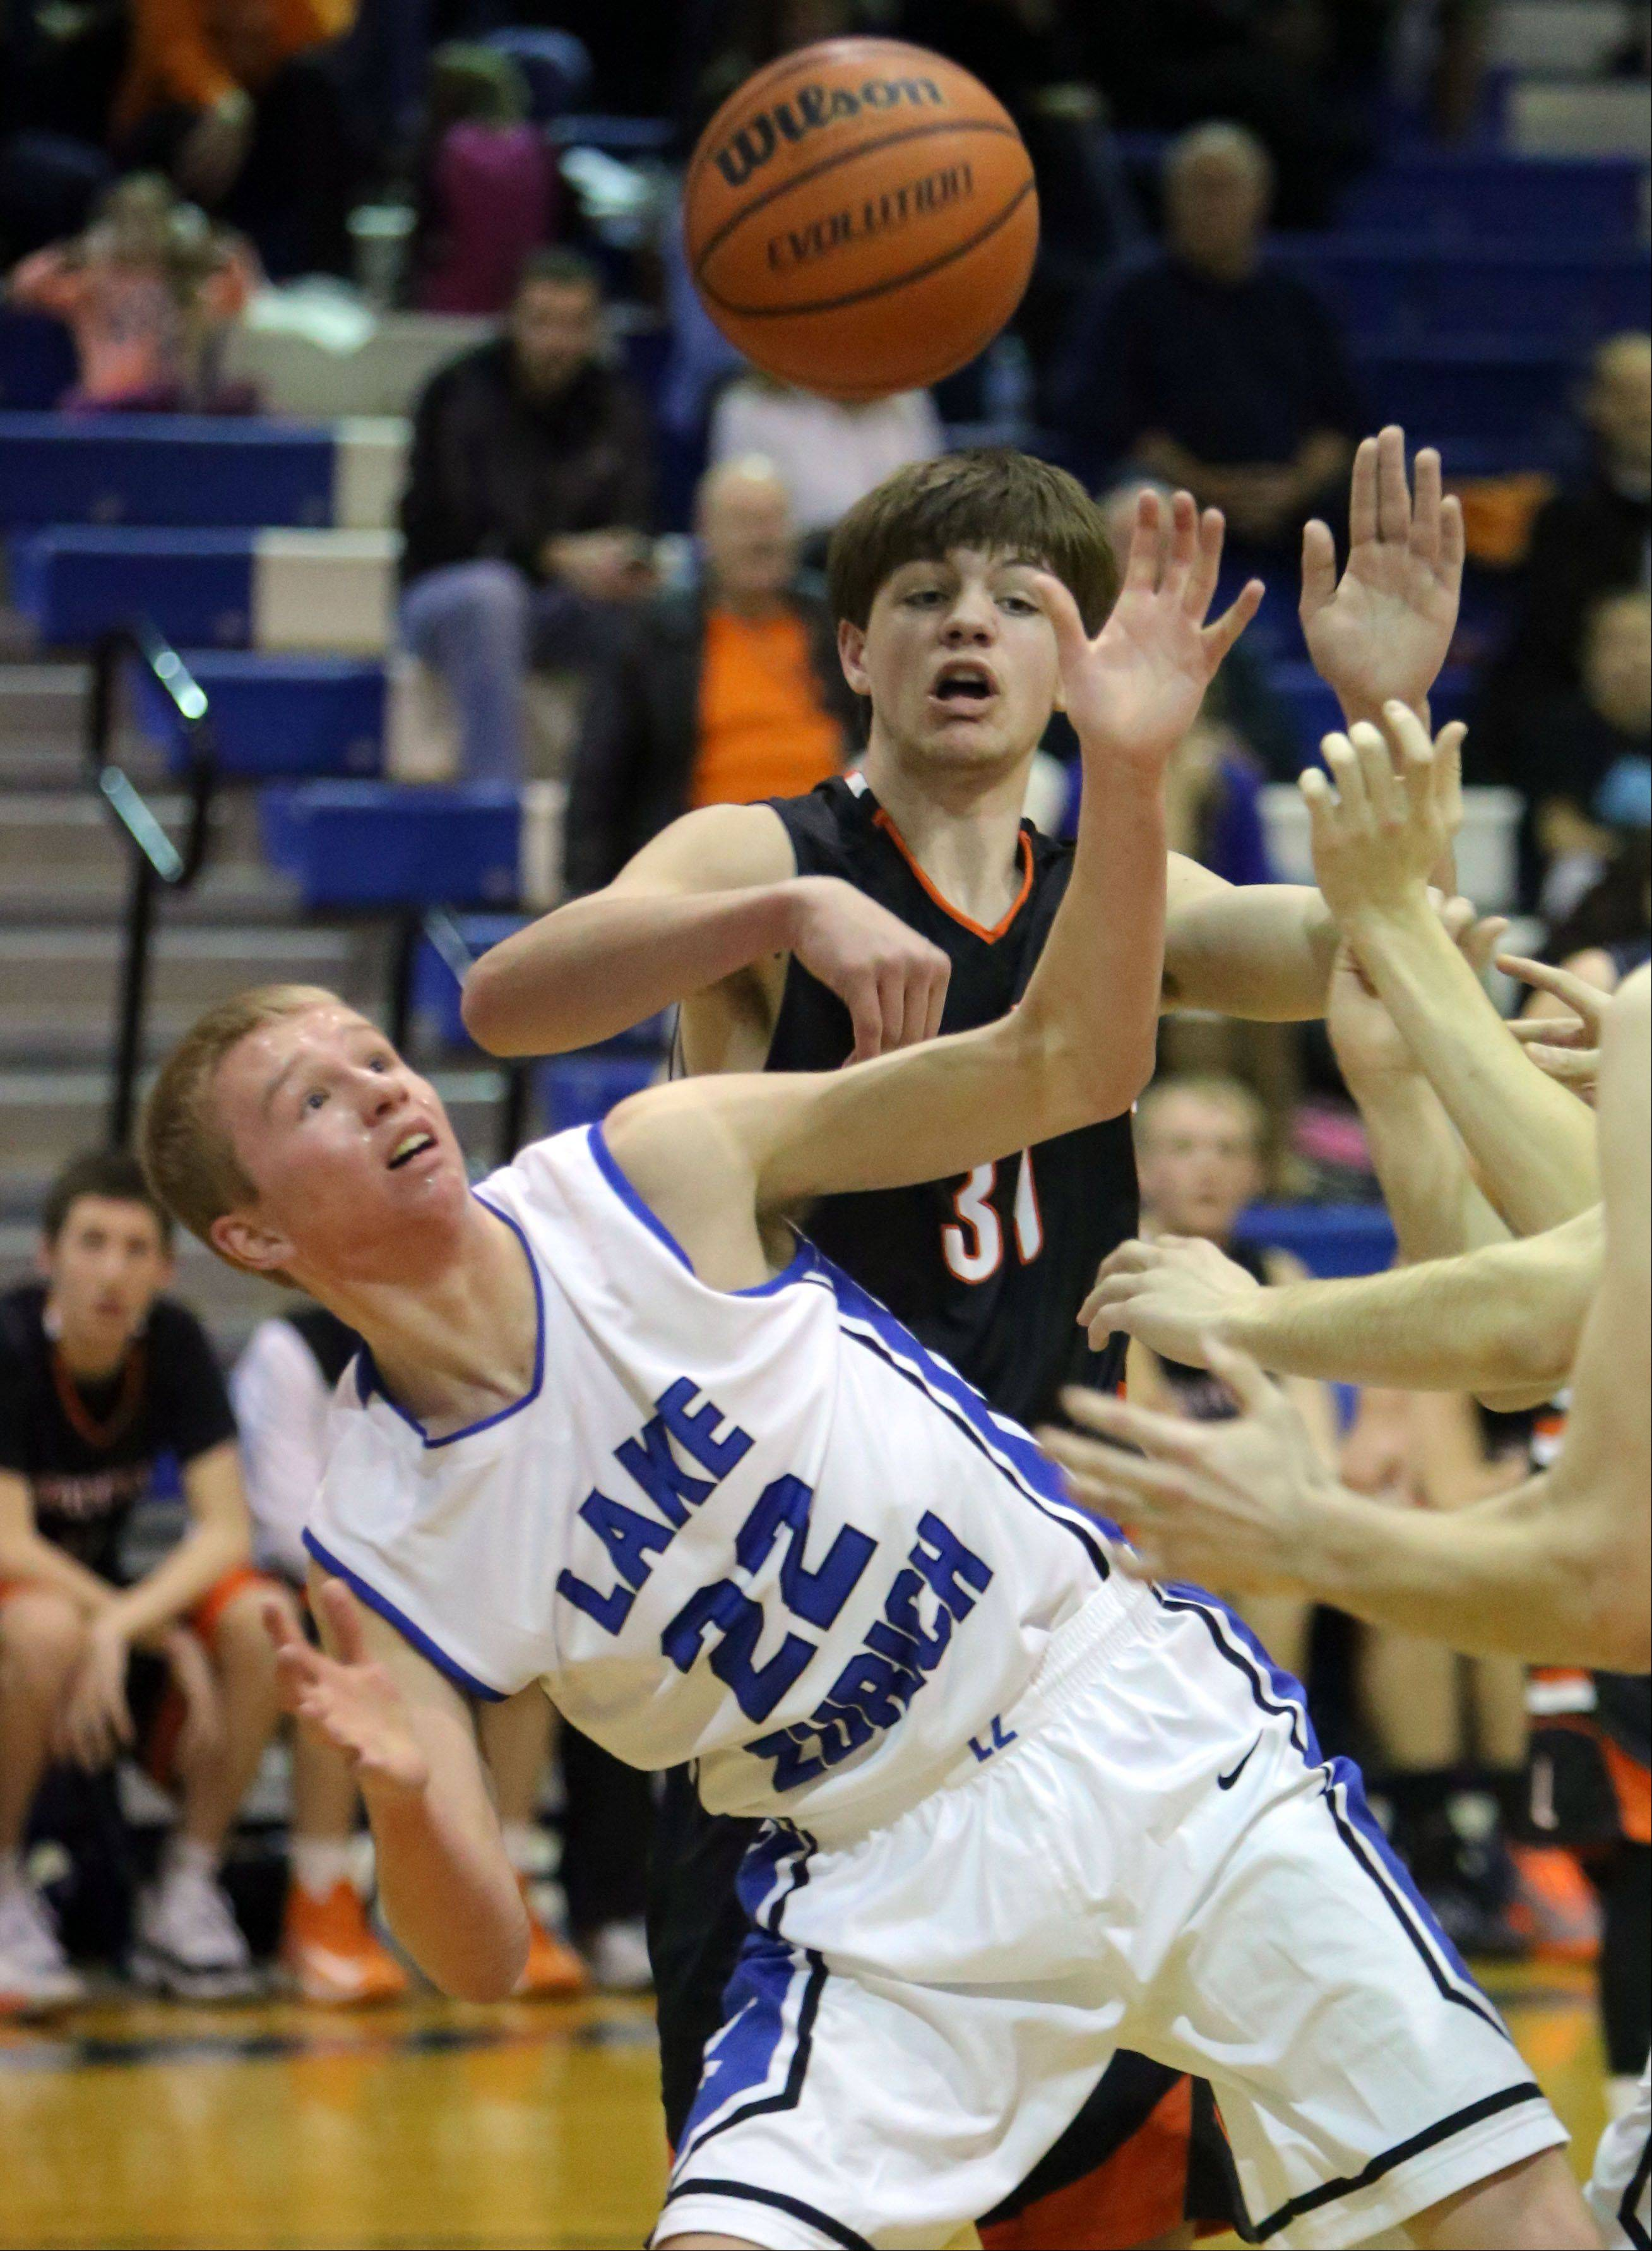 Lake Zurich's Brad Kruse, left, battles Libertyville's Joe Borcia for a rebound.